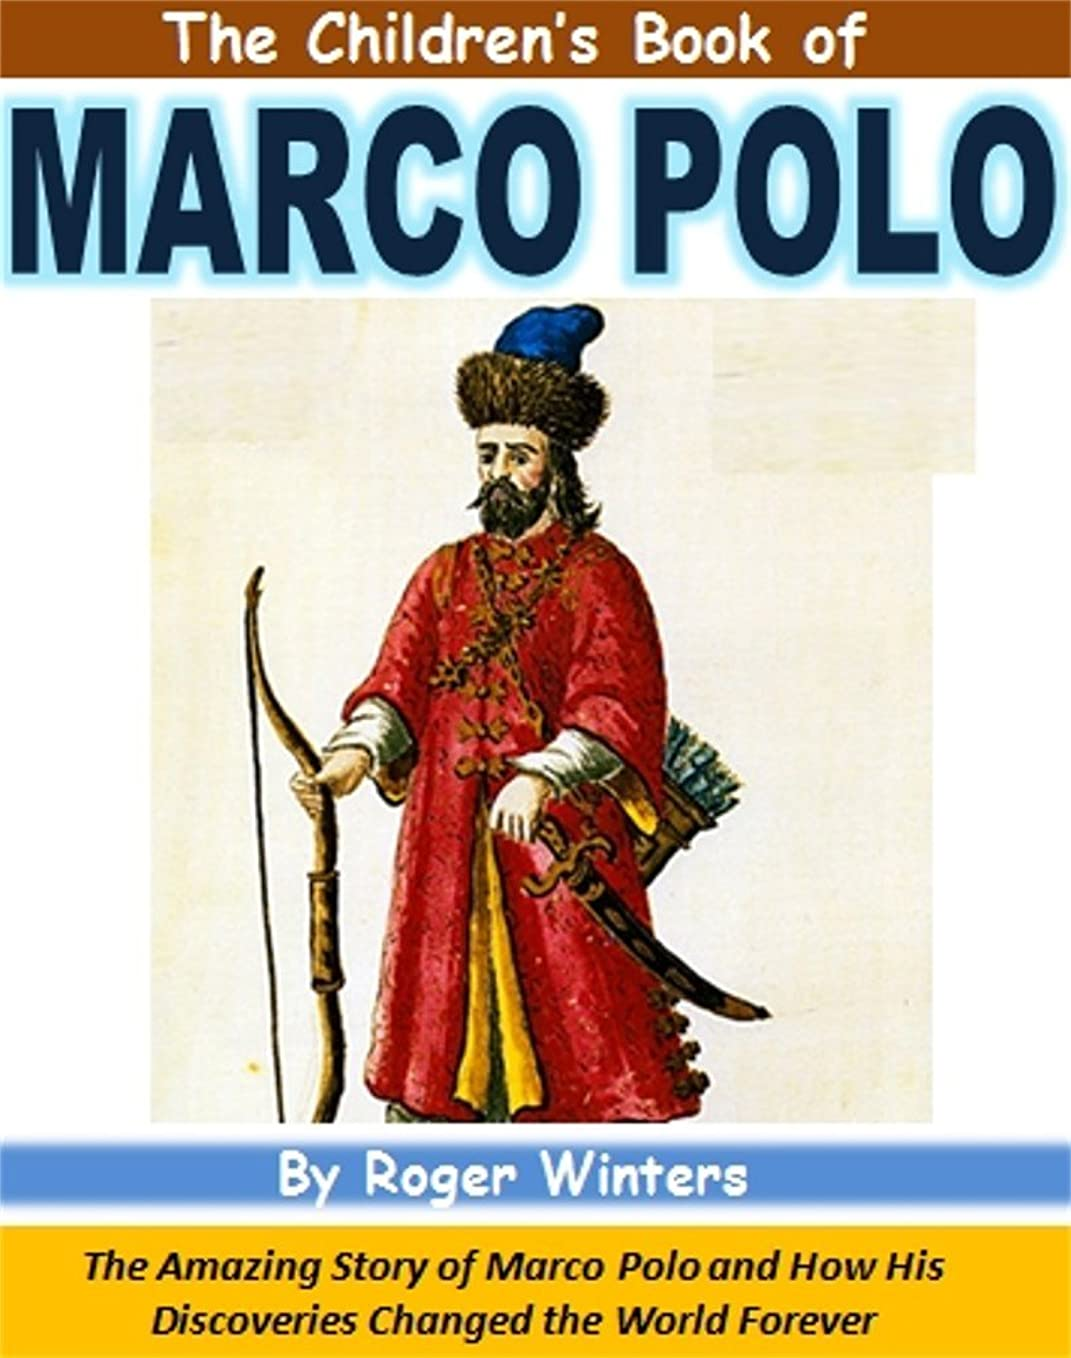 The Children's Book of Marco Polo: The Amazing Story of Marco Polo and How His Discoveries Changed the World Forever (English Edition)